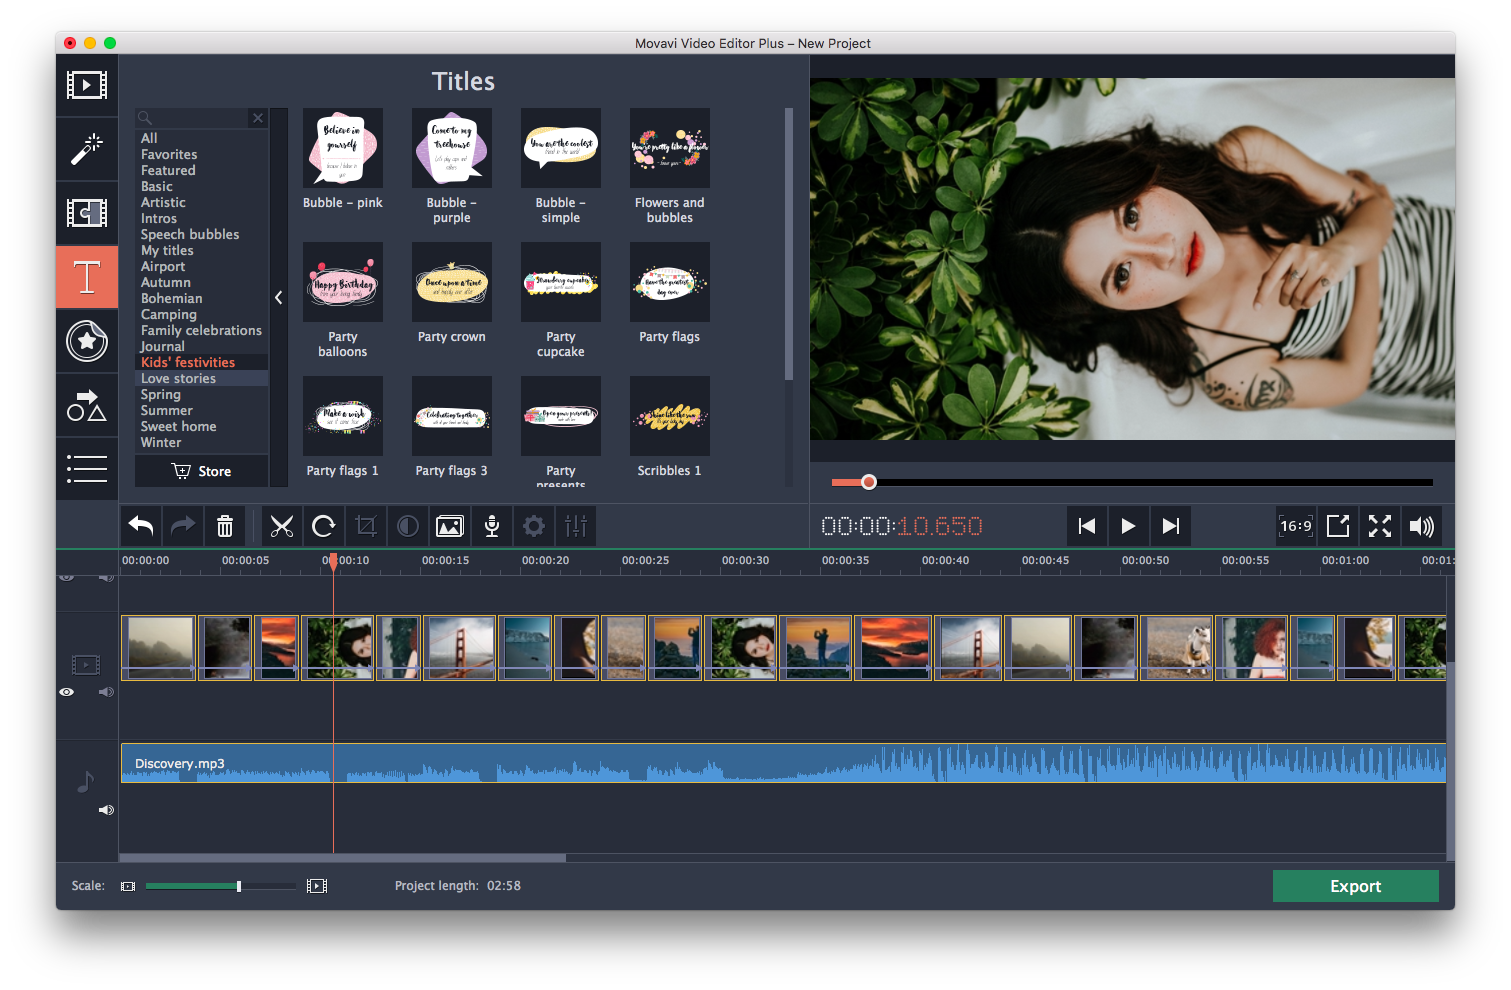 What is the best video editing software for the DJI Mavic